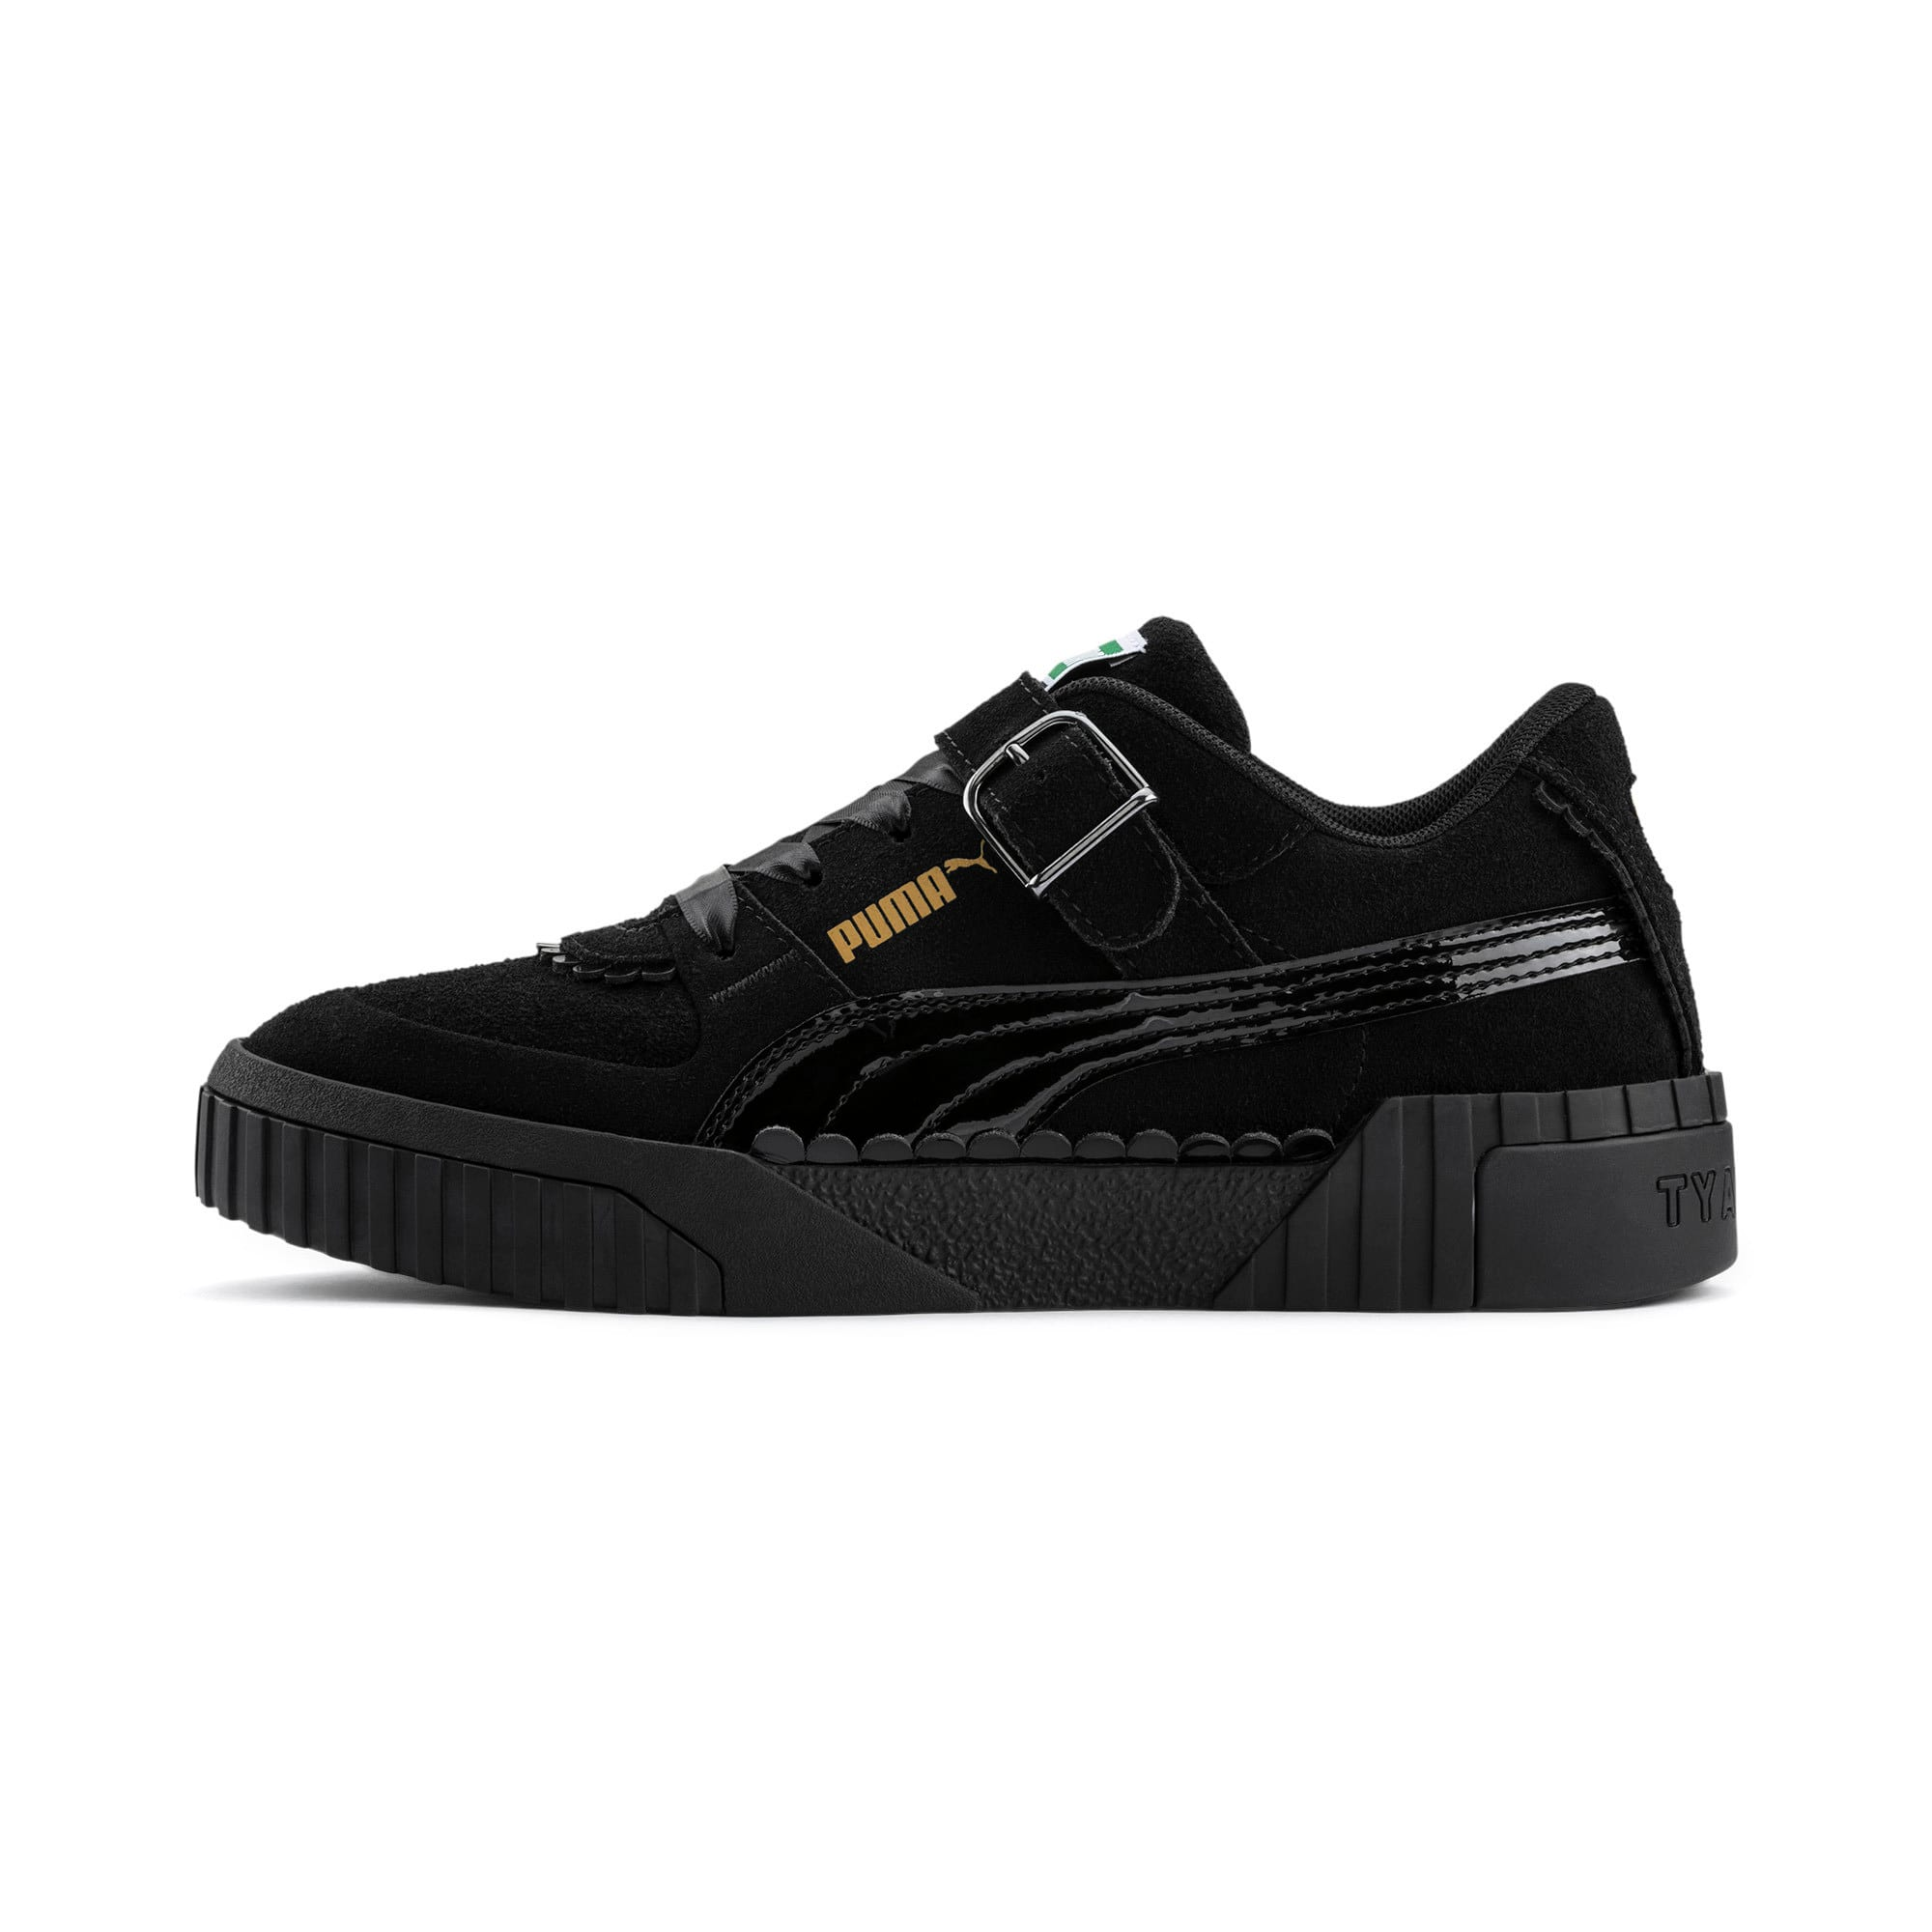 Thumbnail 1 of PUMA x TYAKASHA Cali Women's Trainers, Puma Black, medium